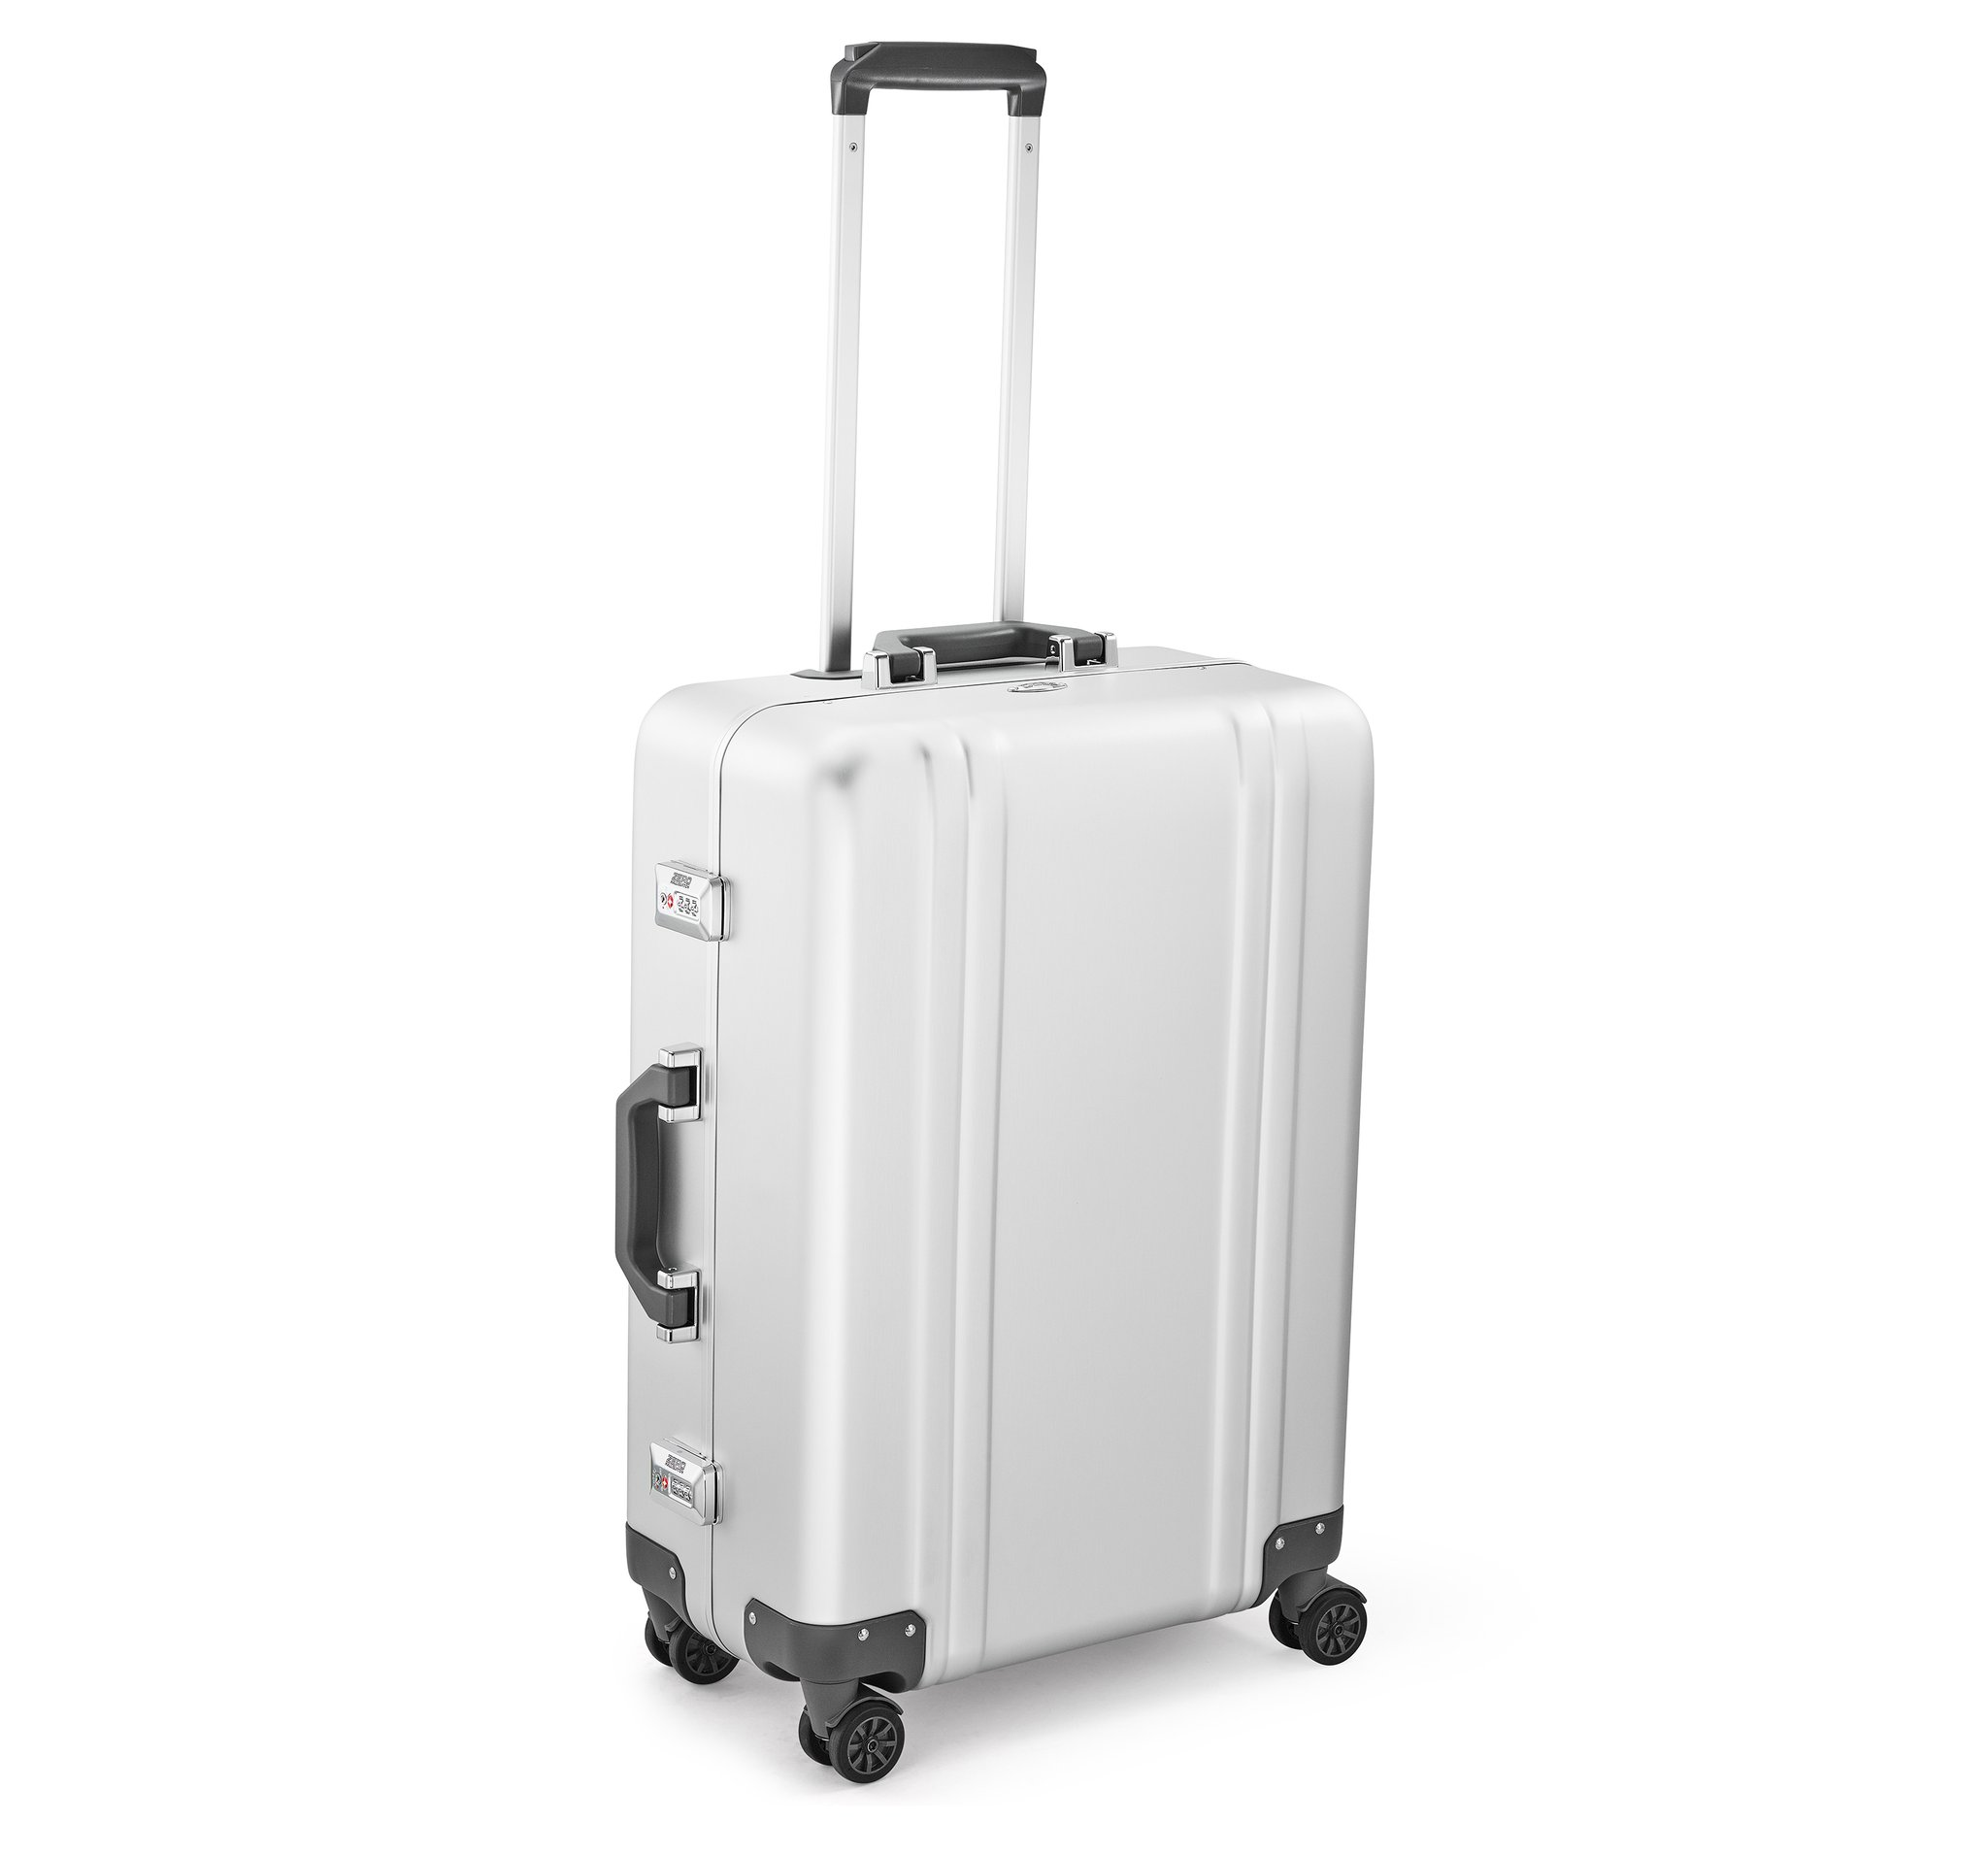 "Classic Aluminum 2.0 - 24"" Spinner Luggage by Zero Halliburton (Color: Silver)"